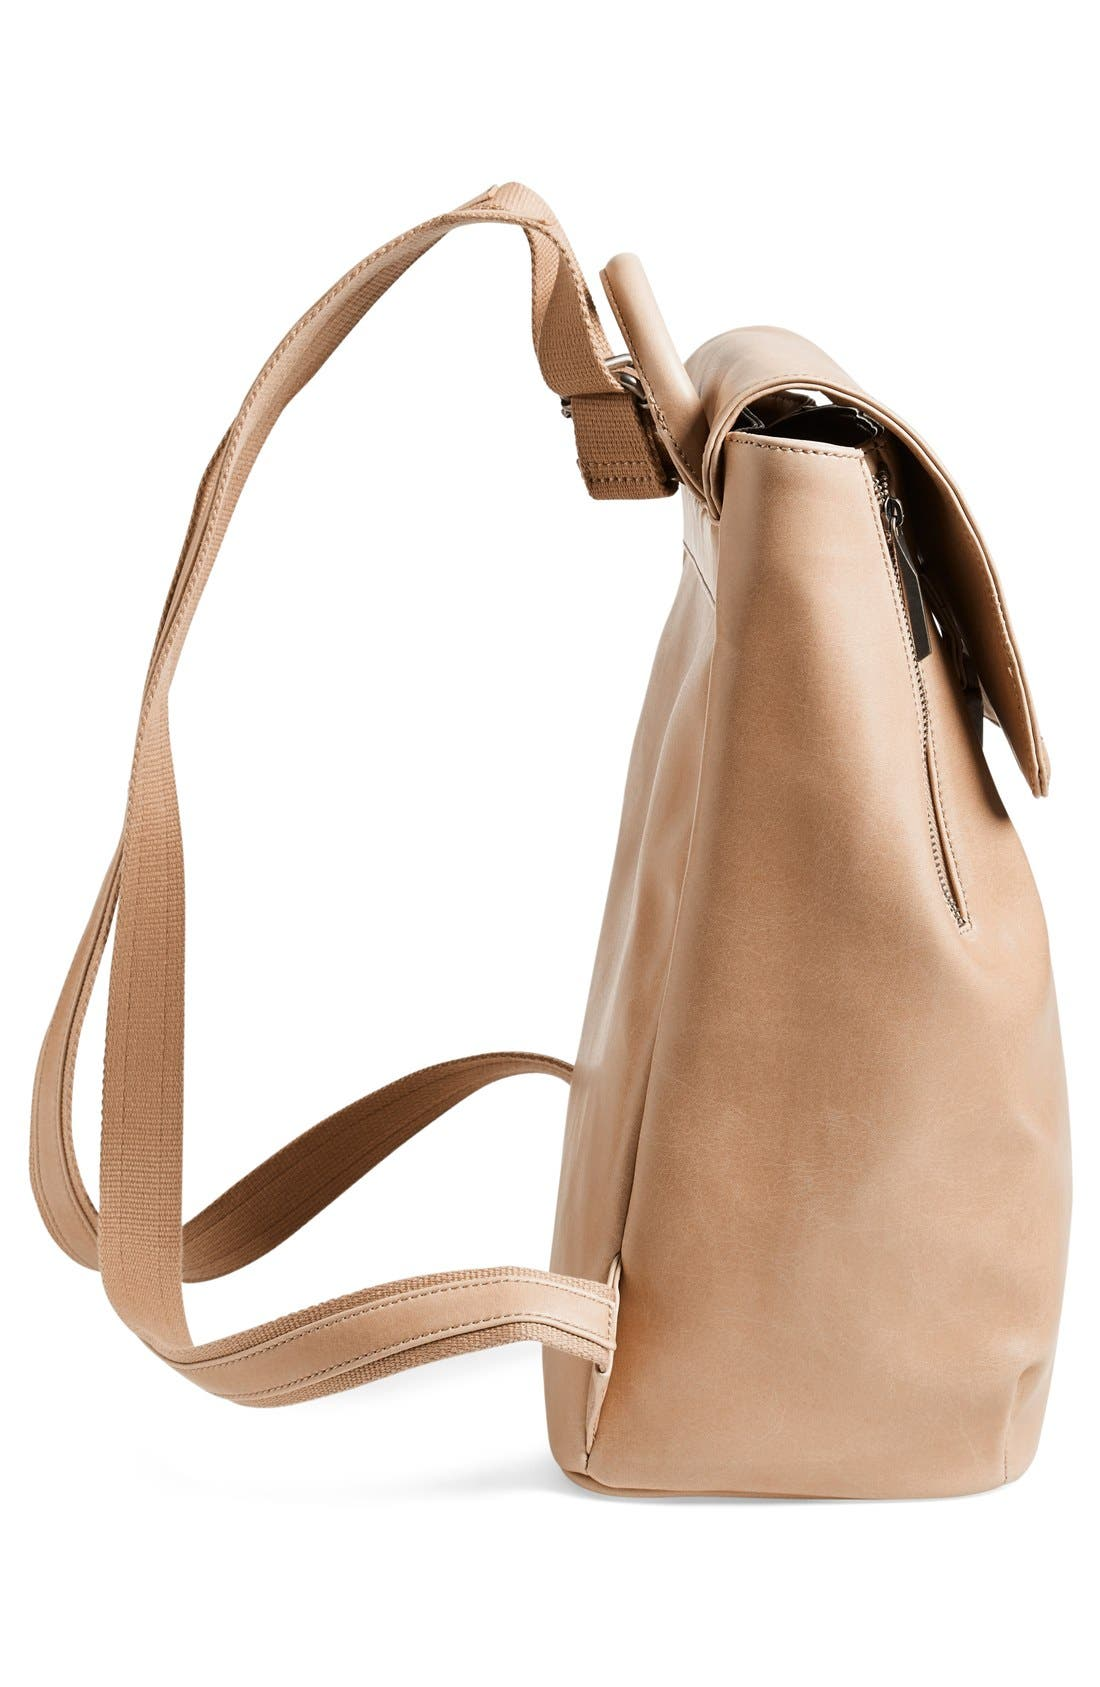 'Fabi' Faux Leather Laptop Backpack,                             Alternate thumbnail 5, color,                             Cardamom